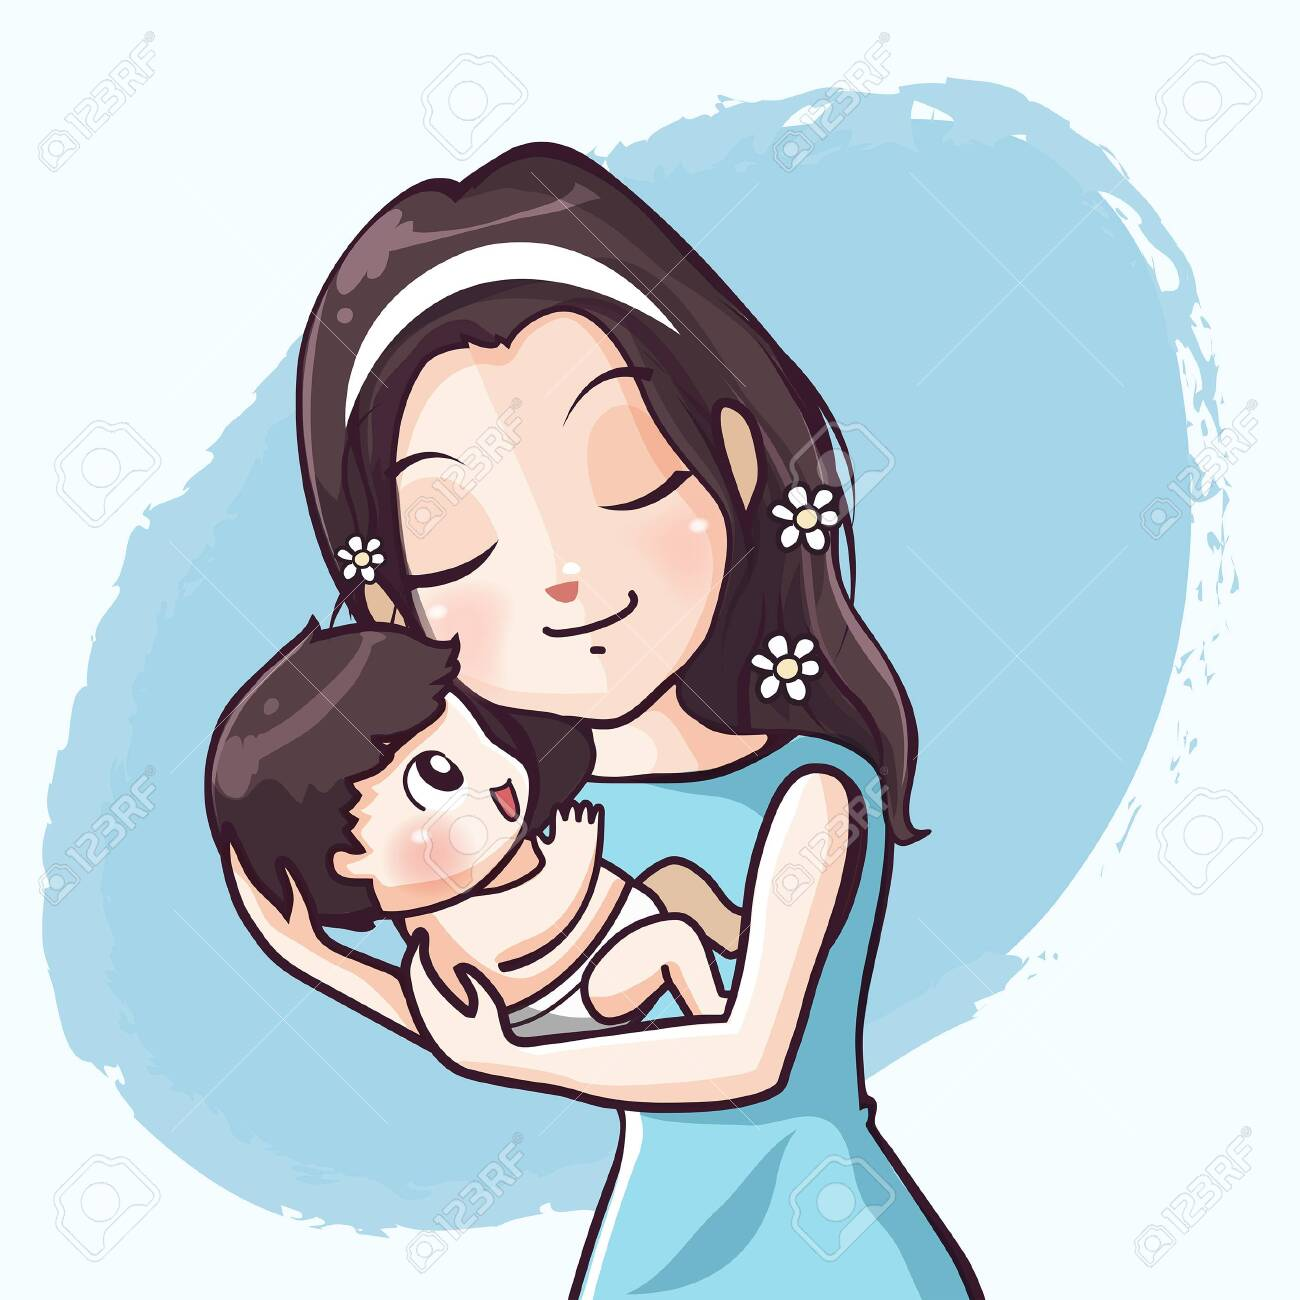 Mother Cuddled Baby Cute Hug With Warm Love Royalty Free Cliparts Vectors And Stock Illustration Image 122743381